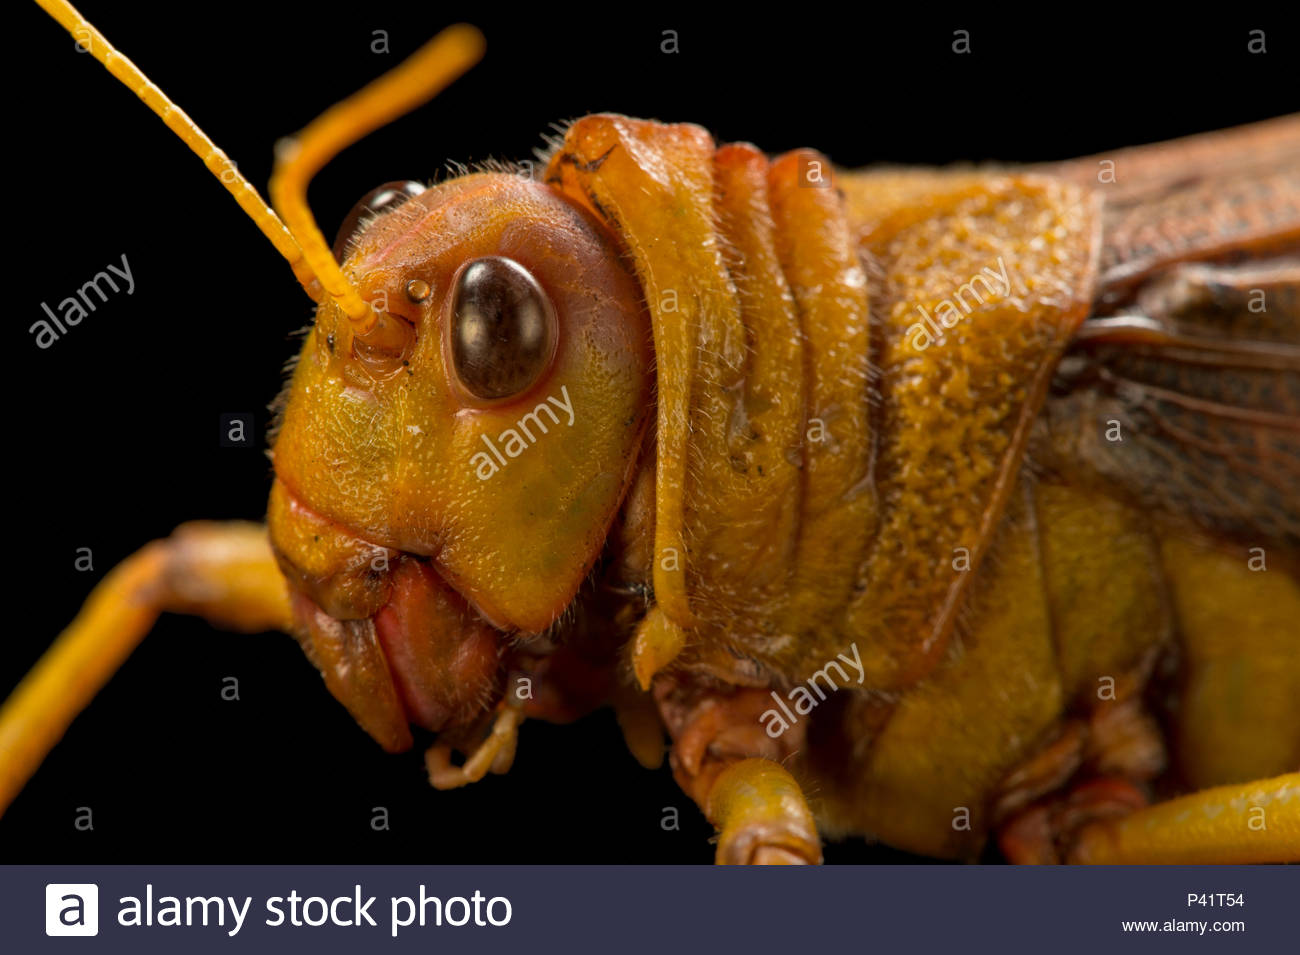 South American giant grasshopper, Tropidacris collaris, at the Budapest Zoo. - Stock Image